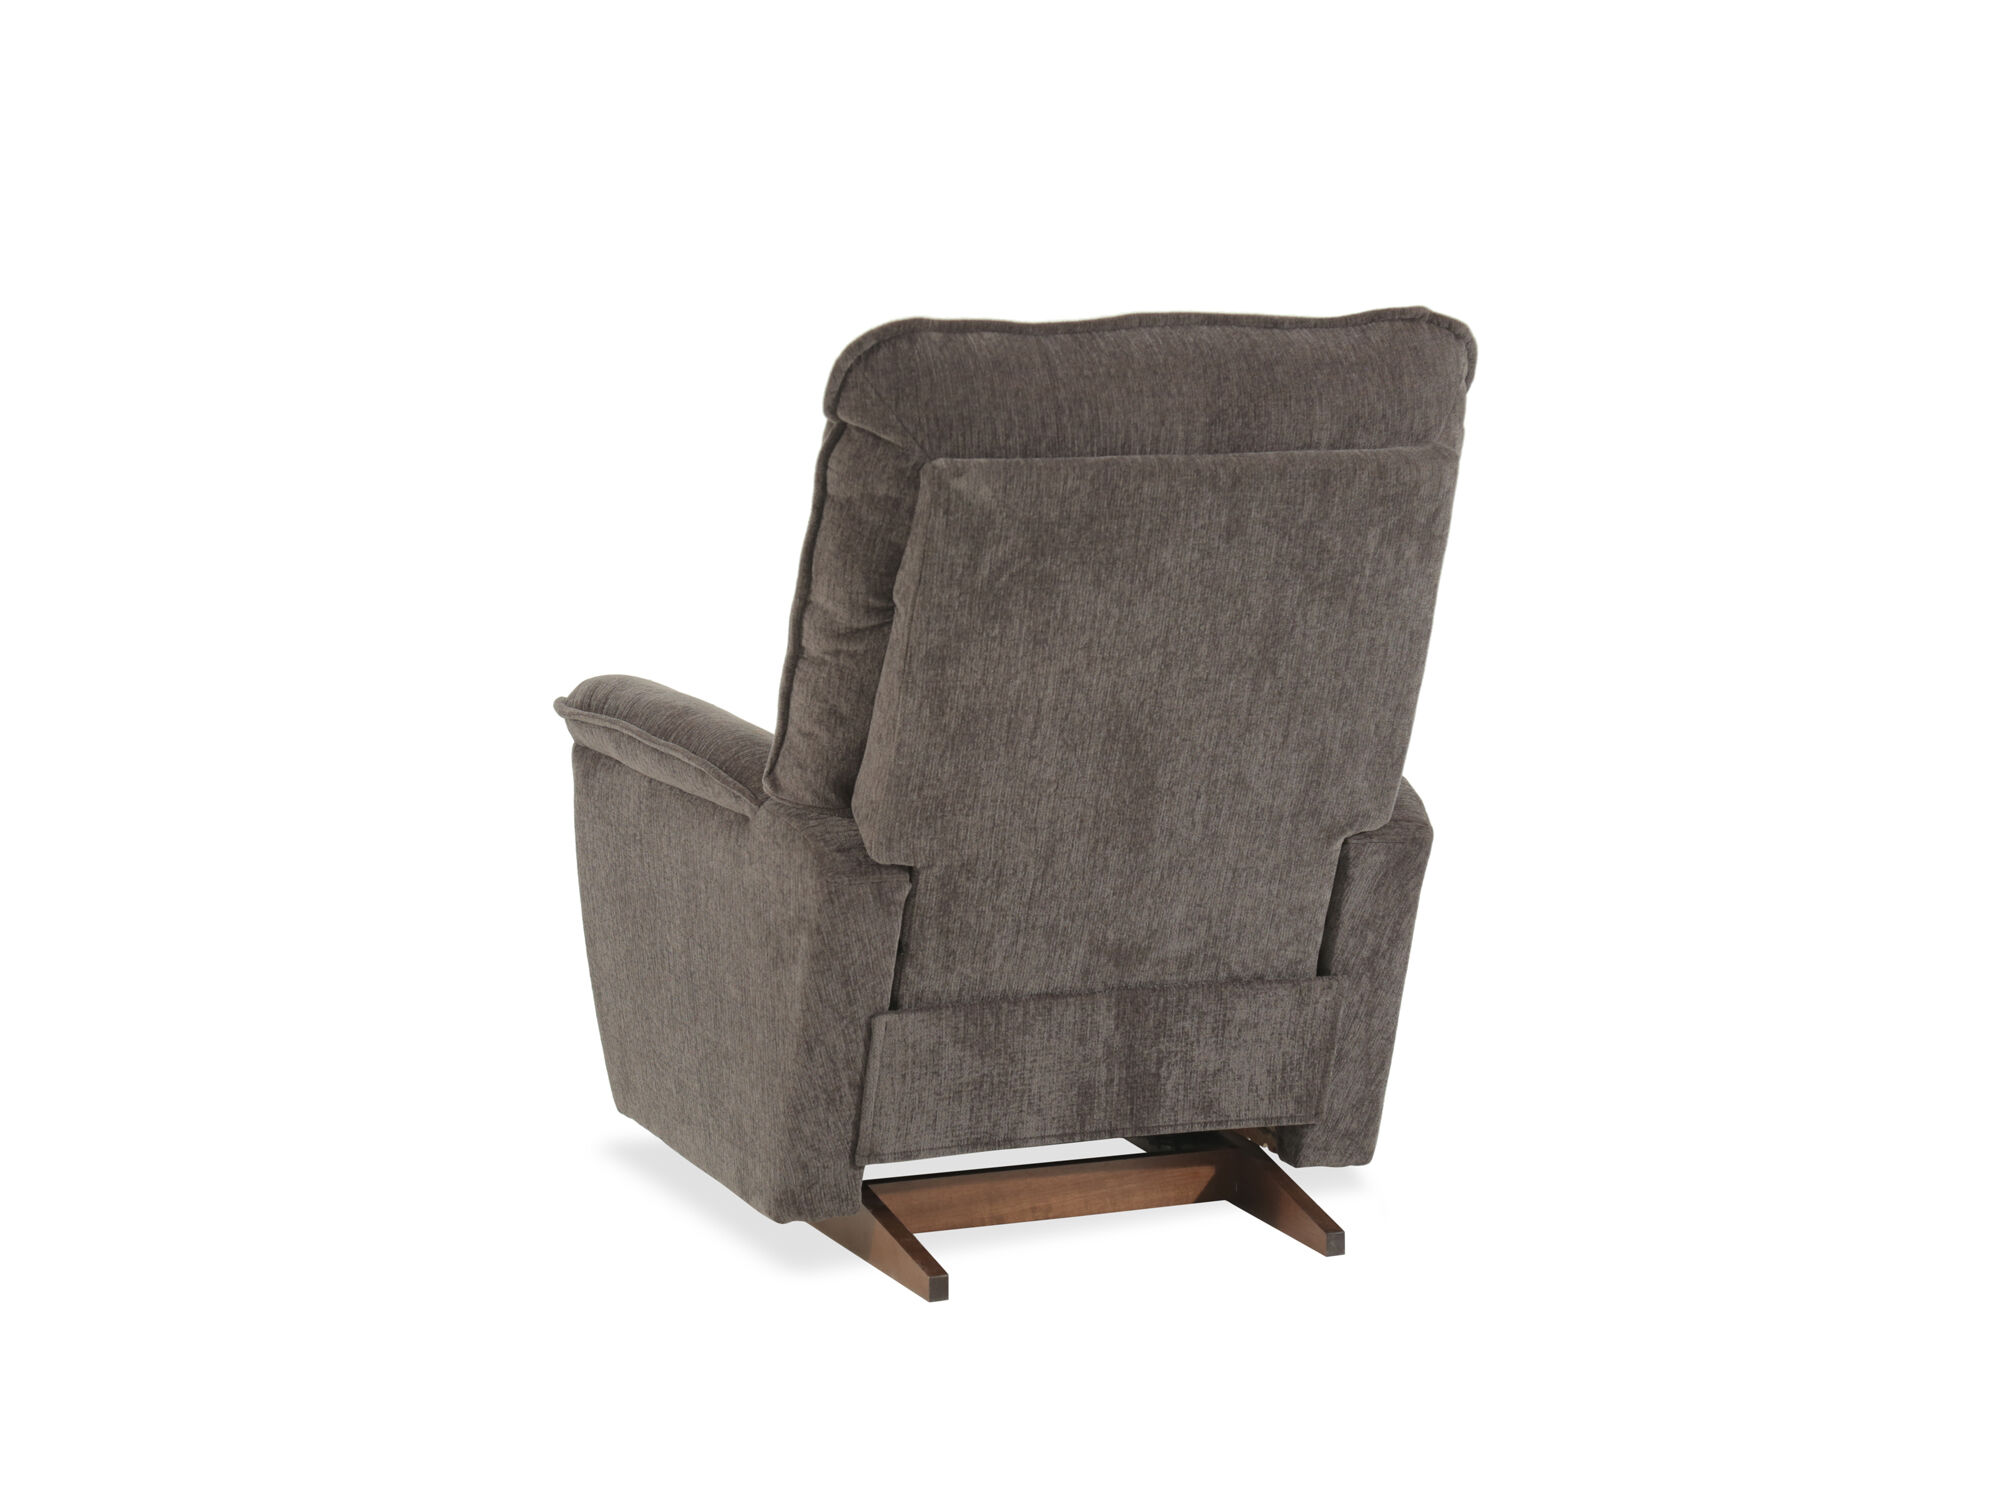 Supported On A Dark Brown Finished Base With A Matching Pull Handle, This Rocker  Recliner Gives A Cushy Upgrade To Indoor Lounging.